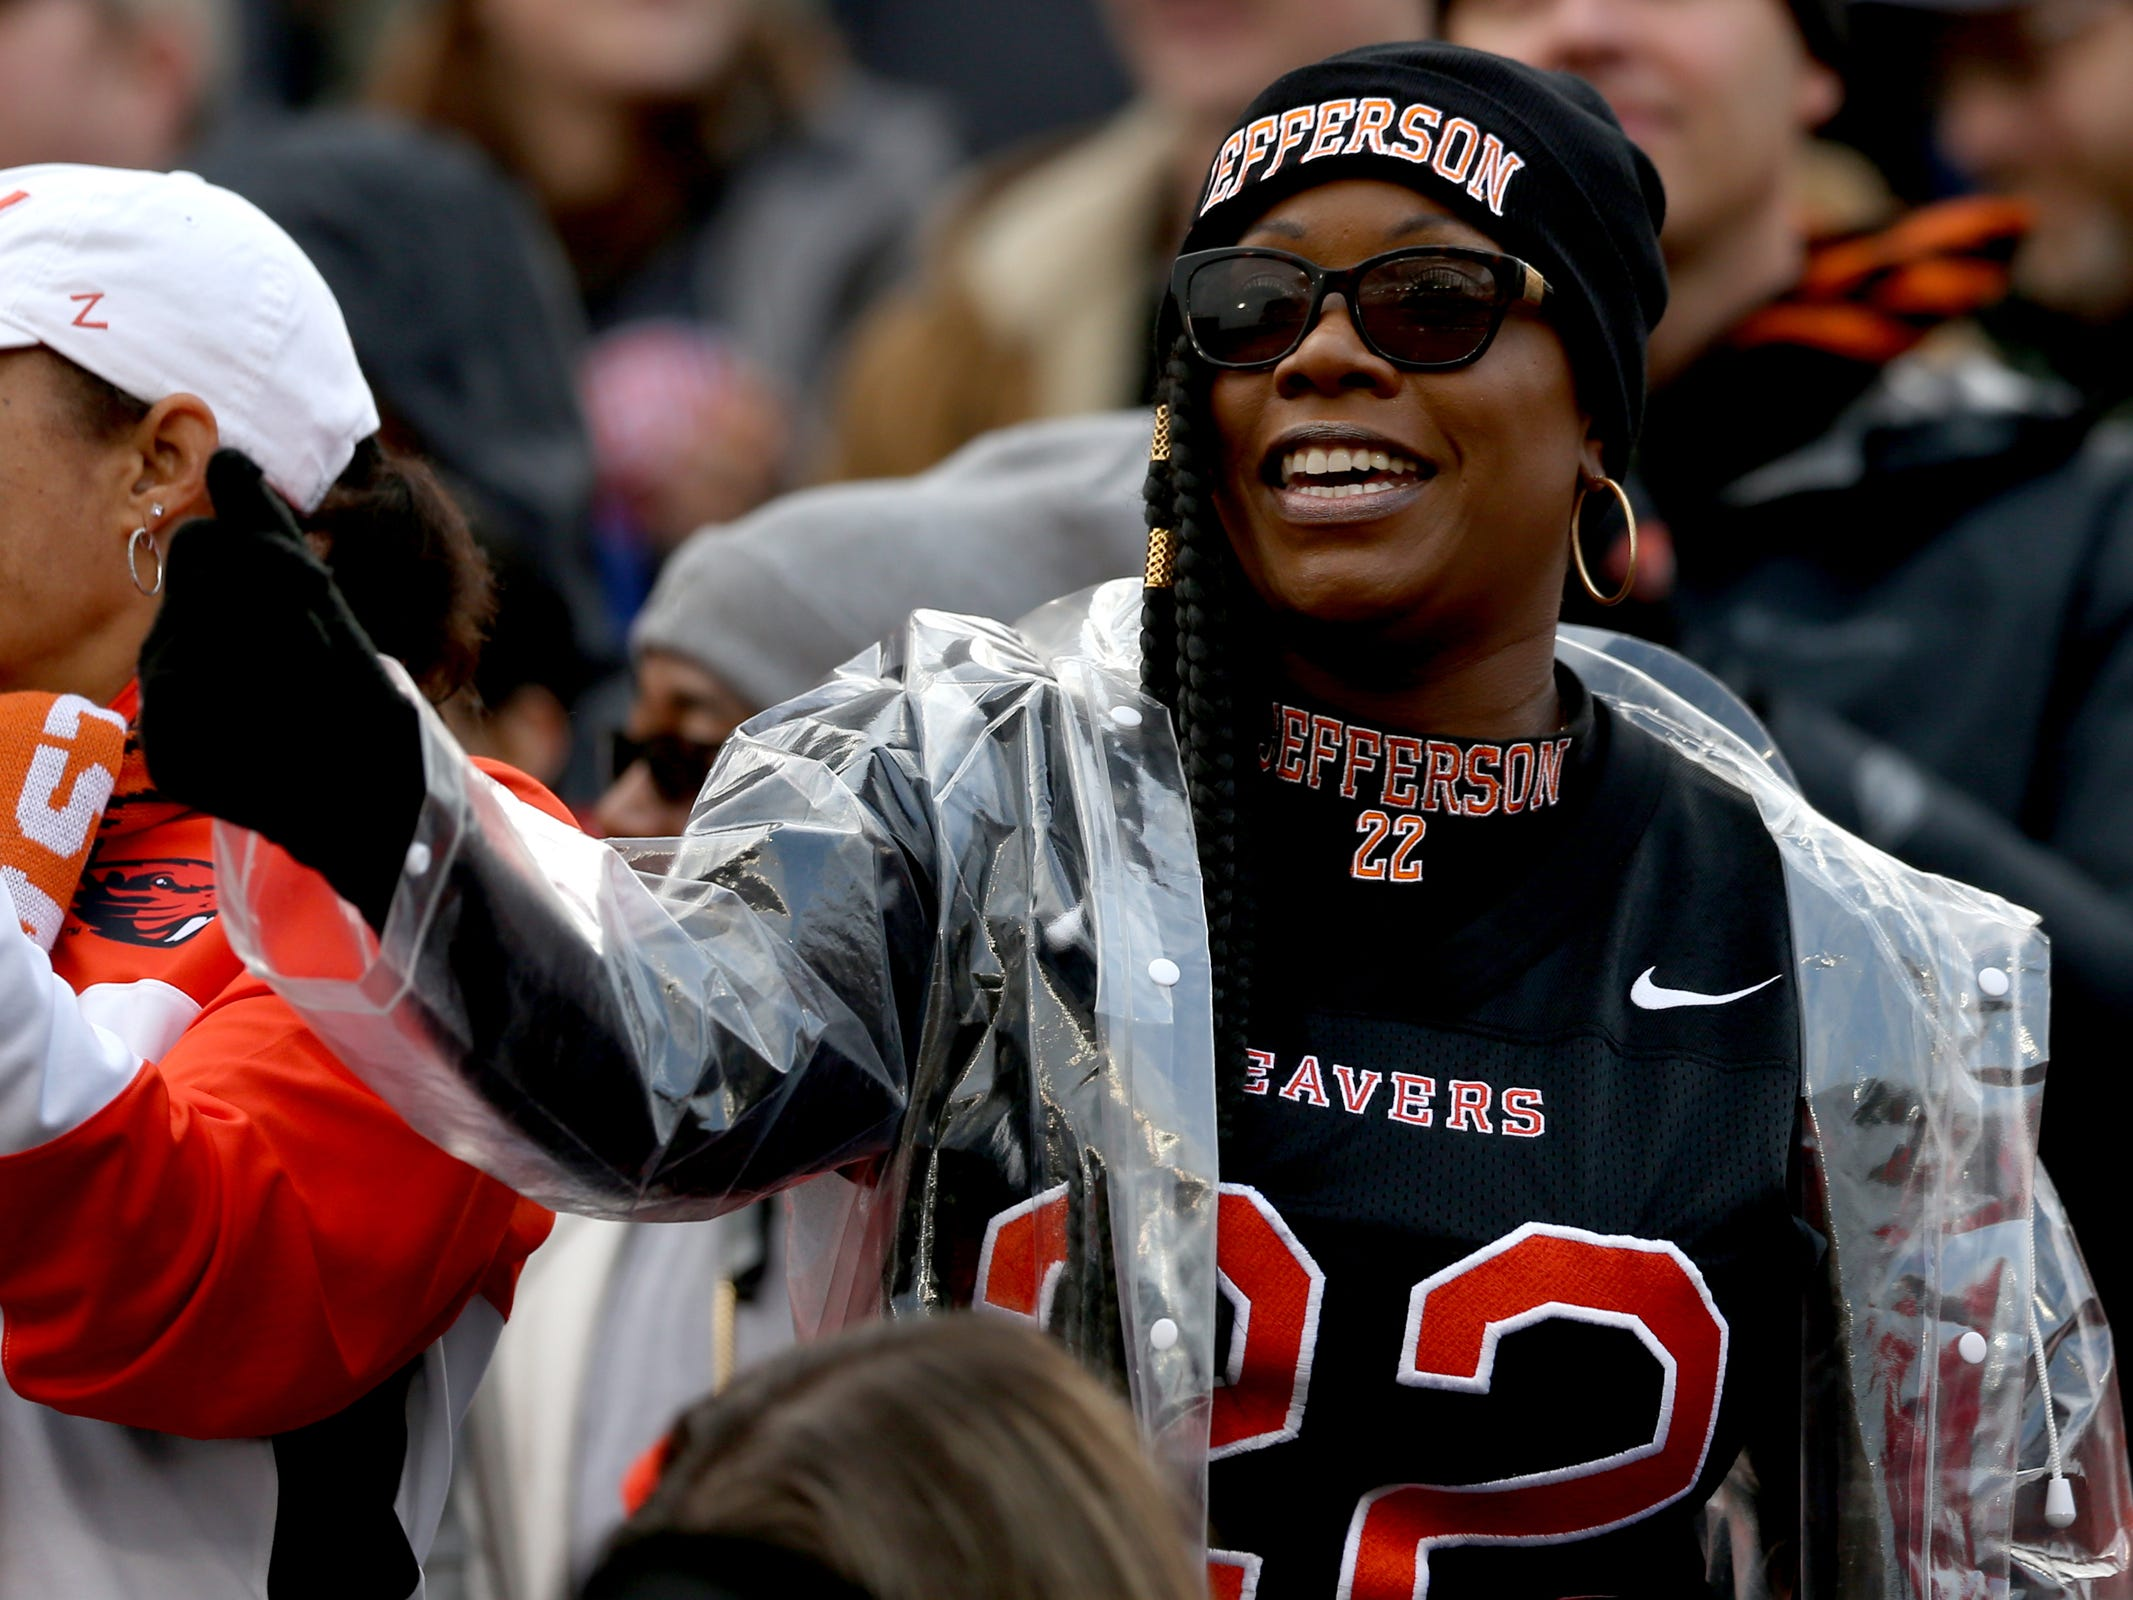 Tracy Green, the mother of Oregon State's Jermar Jefferson, cheers in the Oregon vs. Oregon State Civil war football game at Oregon State University in Corvallis on Friday, Nov. 23, 2018.